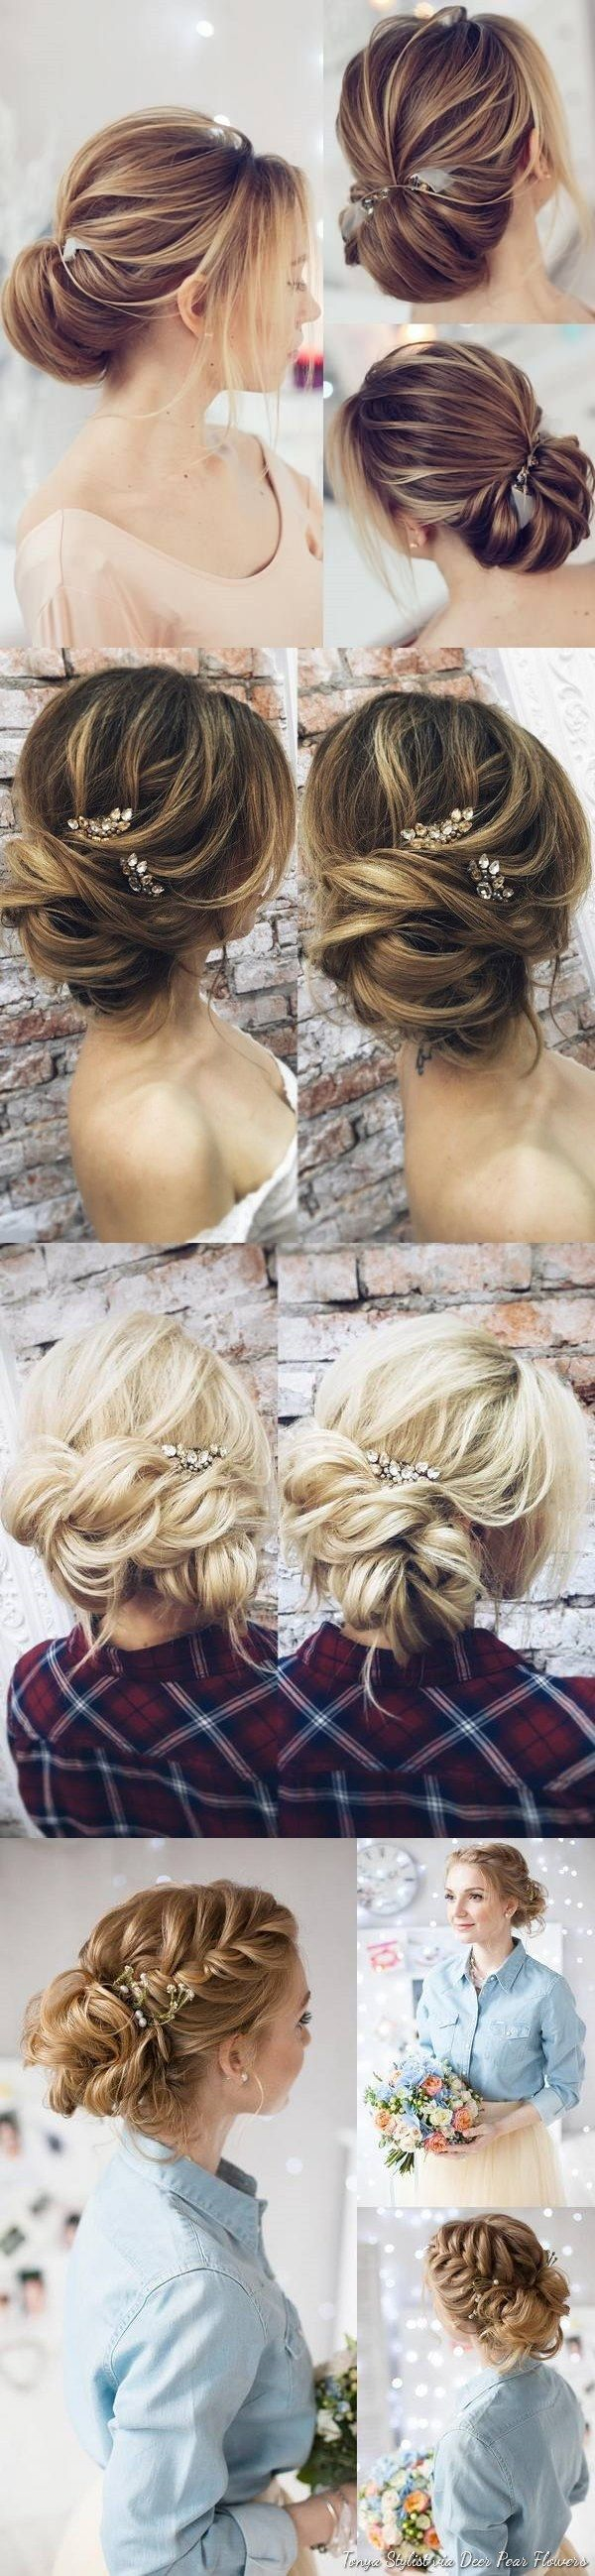 Coiffure De Mariage : Wedding Hairstyles for Long Hair from Tonyastylist / www.deerpearlflow......